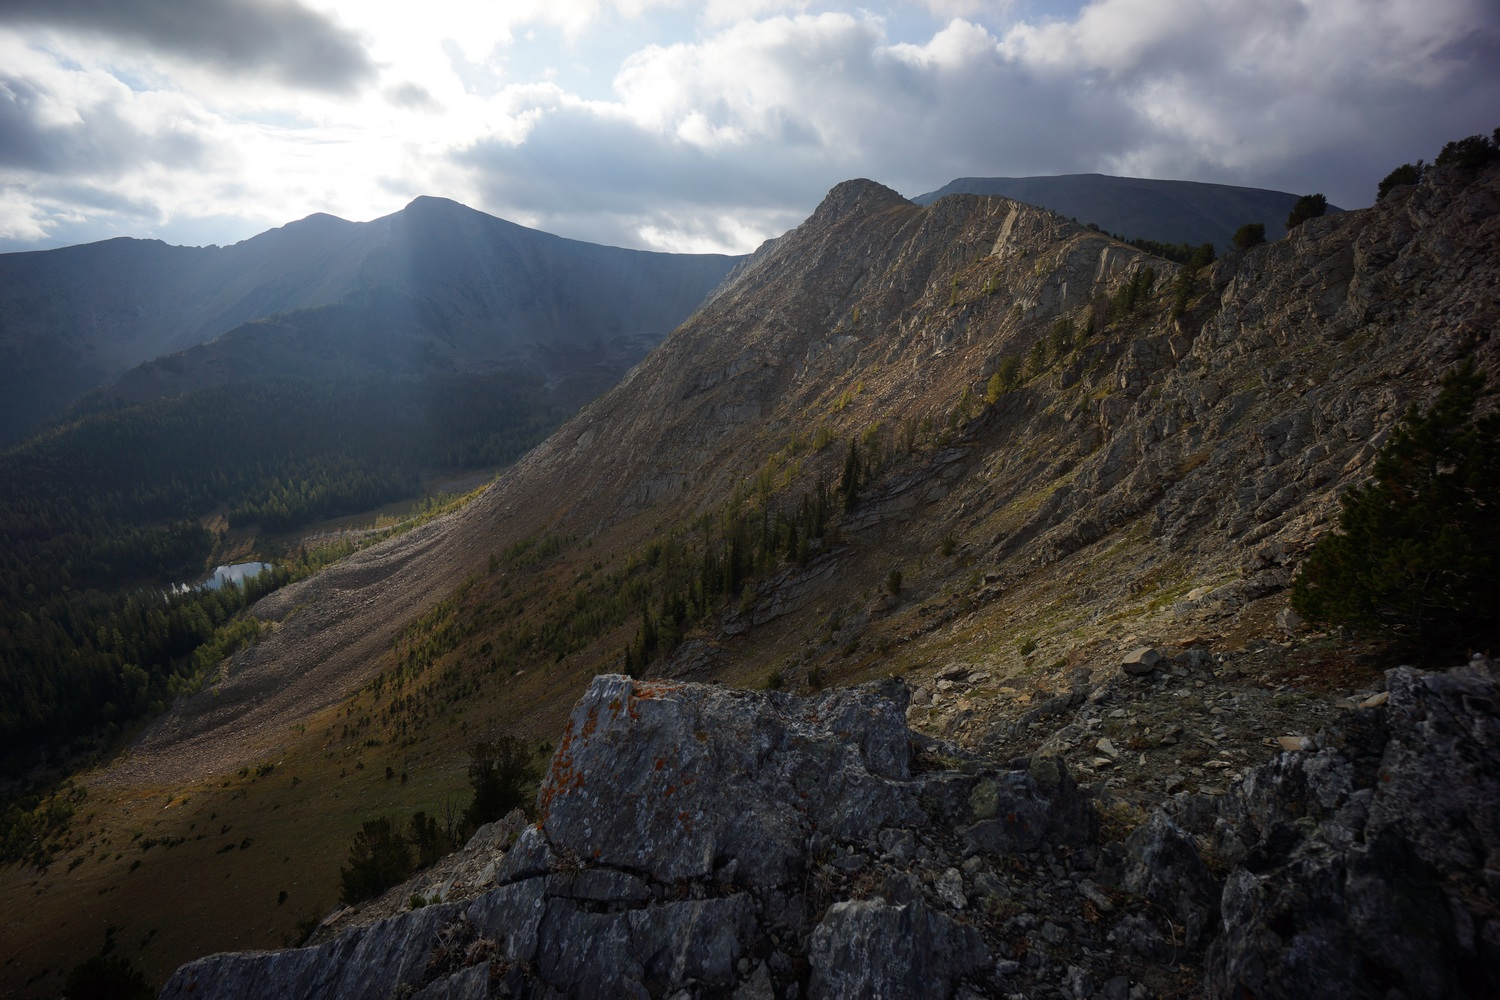 darby to anaconda hike on the continental divide trail 2018